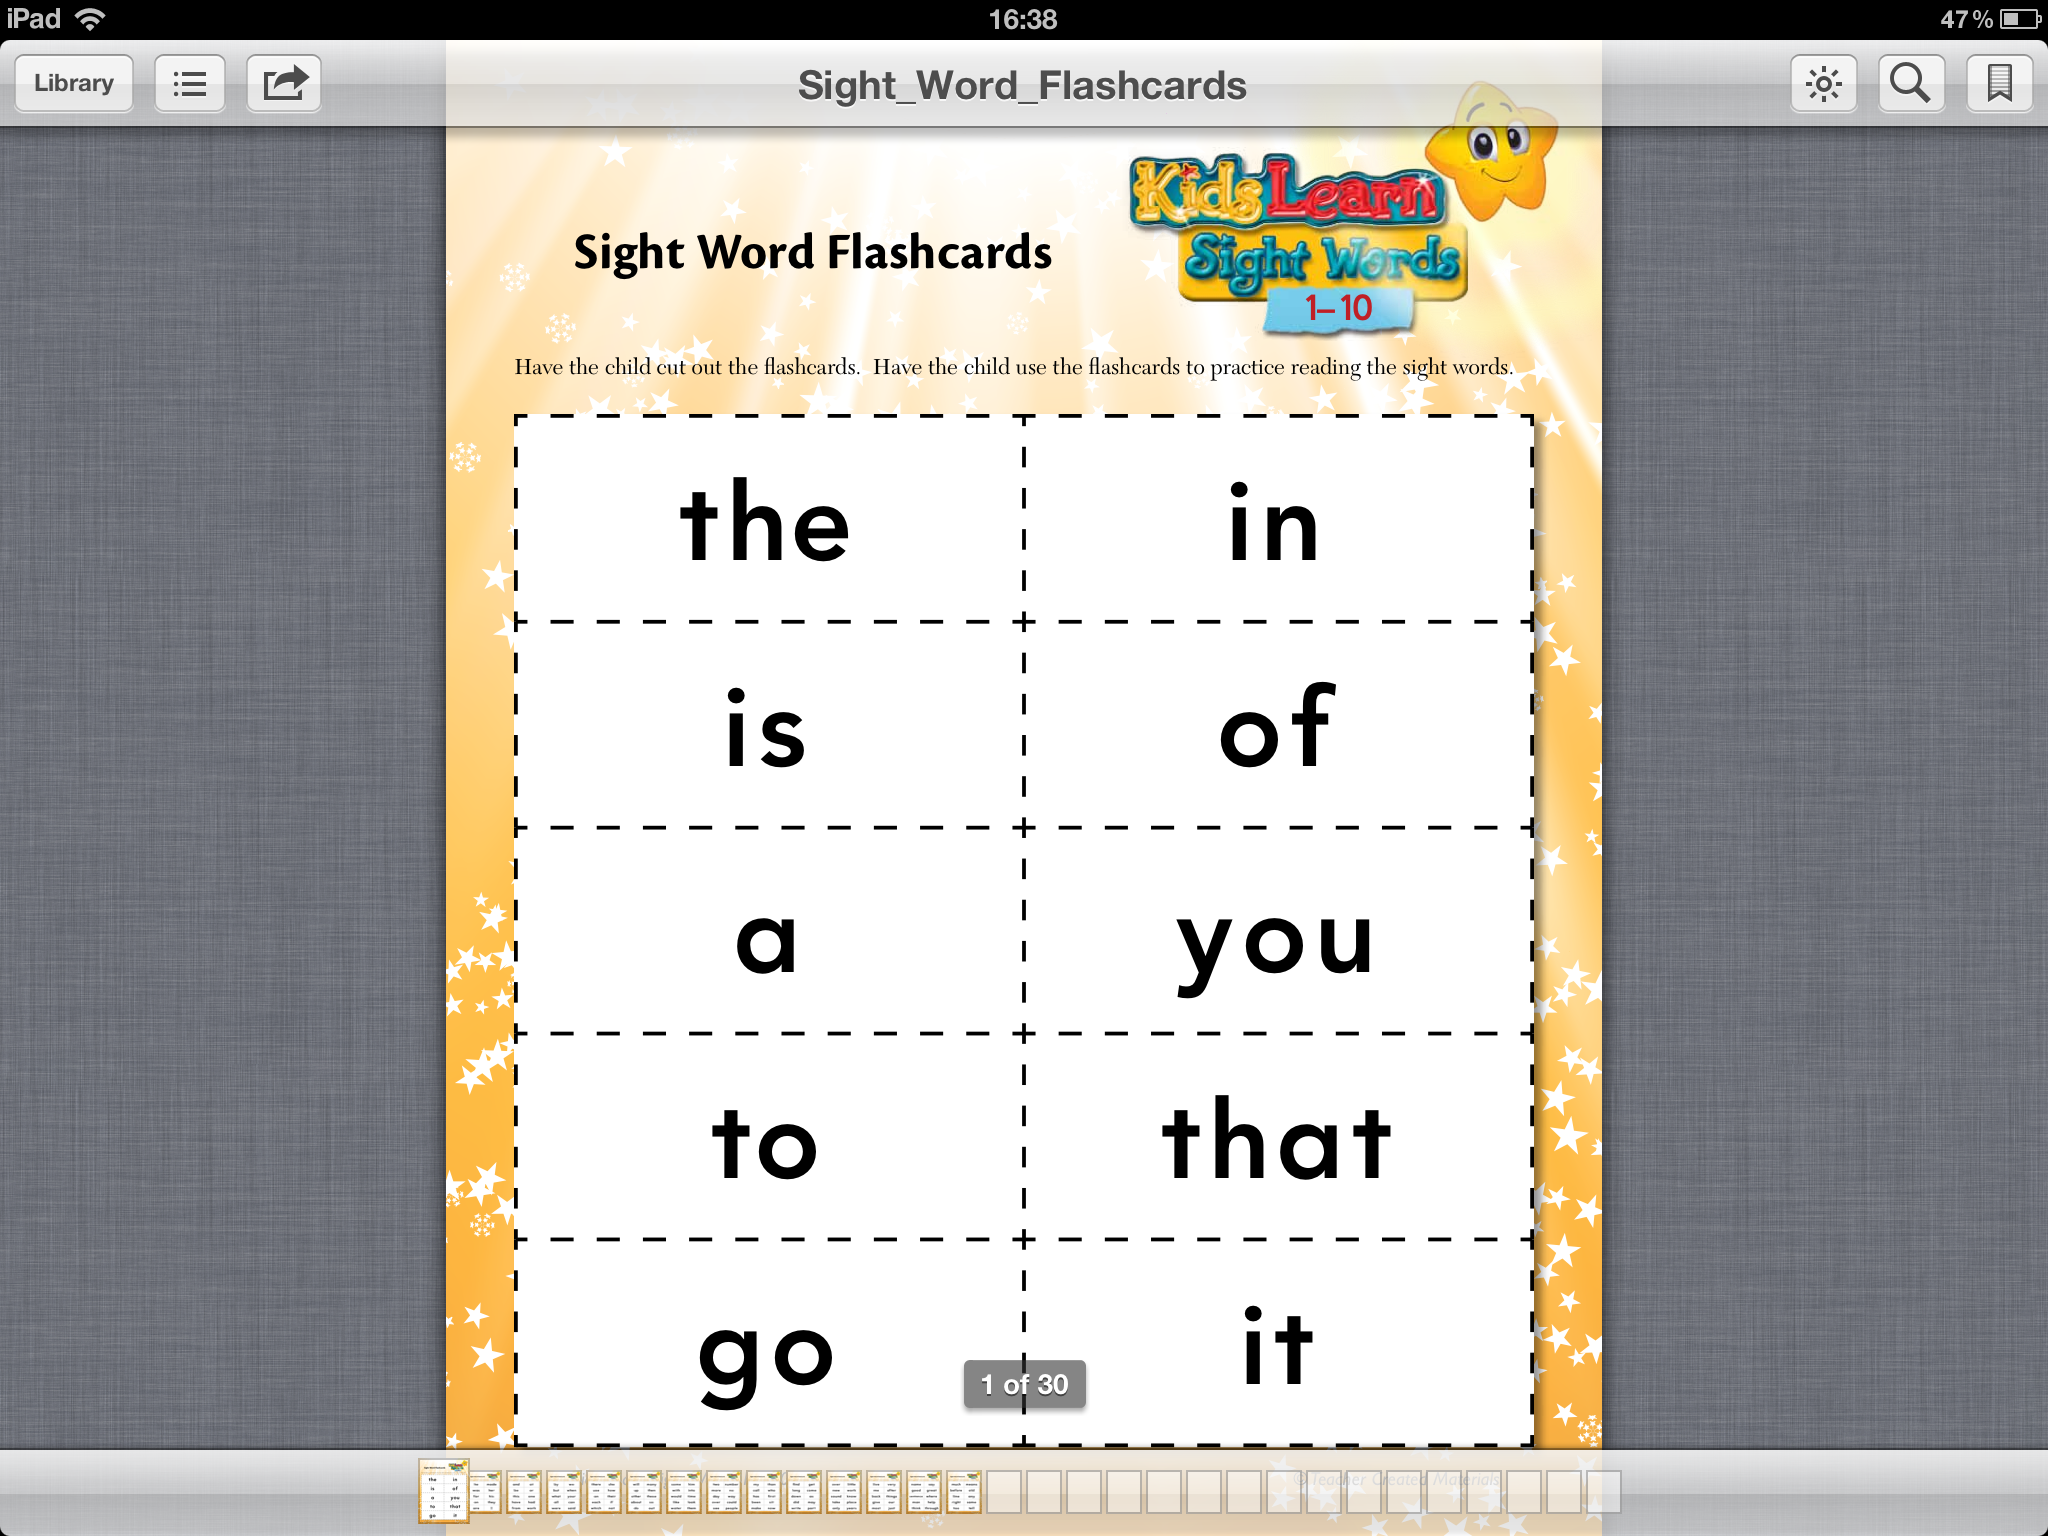 Worksheet Fry Sight Words Flash Cards Printable sight word worksheet new 561 words printable cards free app cards